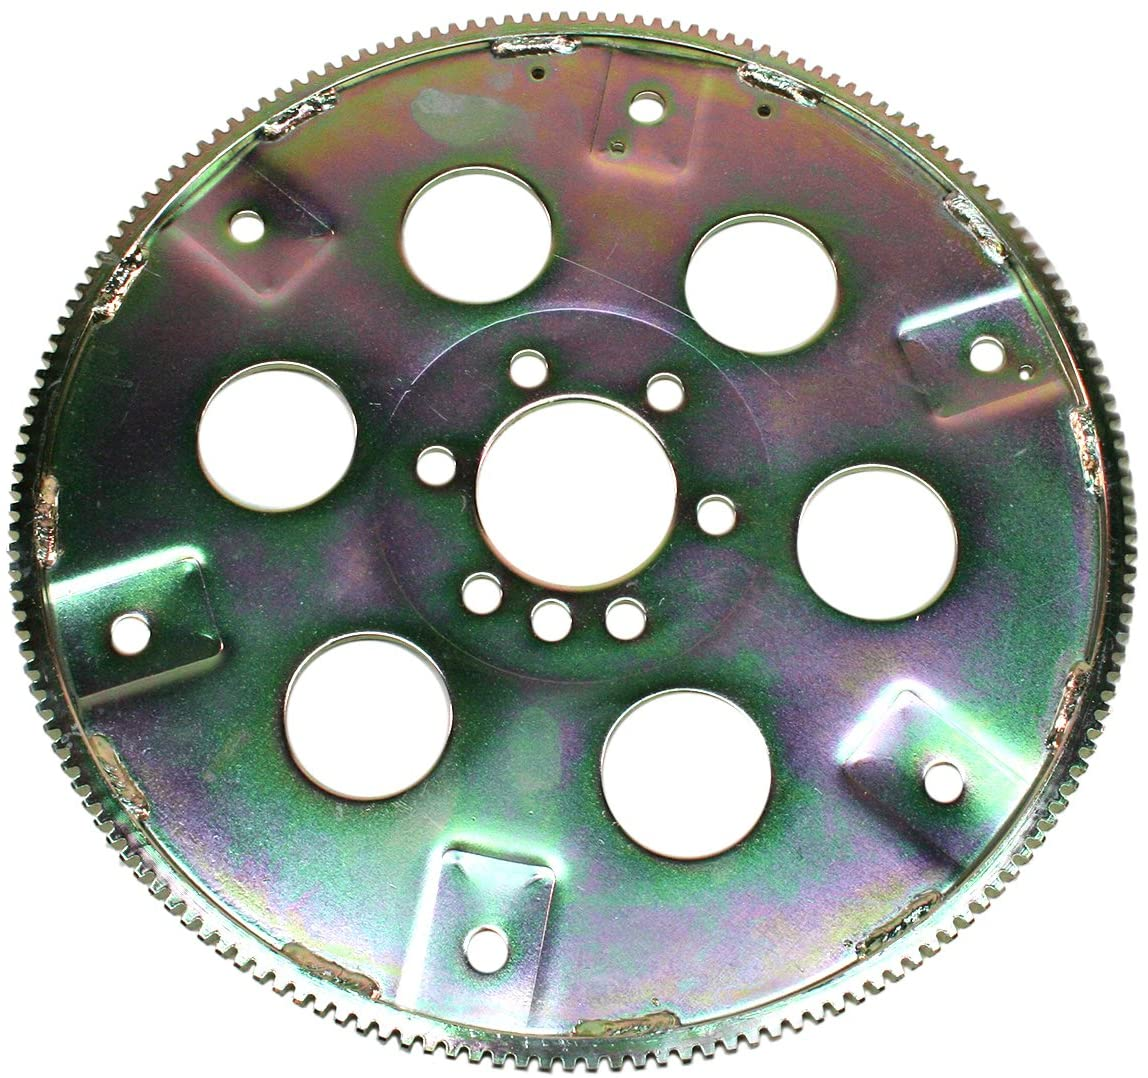 PRW (1849600) 168-Teeth Internal Balance SFI-Rated Chrome-Moly Steel Flexplate with 6-Bolt Convertor 4L80E/4L-85 for Chevy Vortec 8100